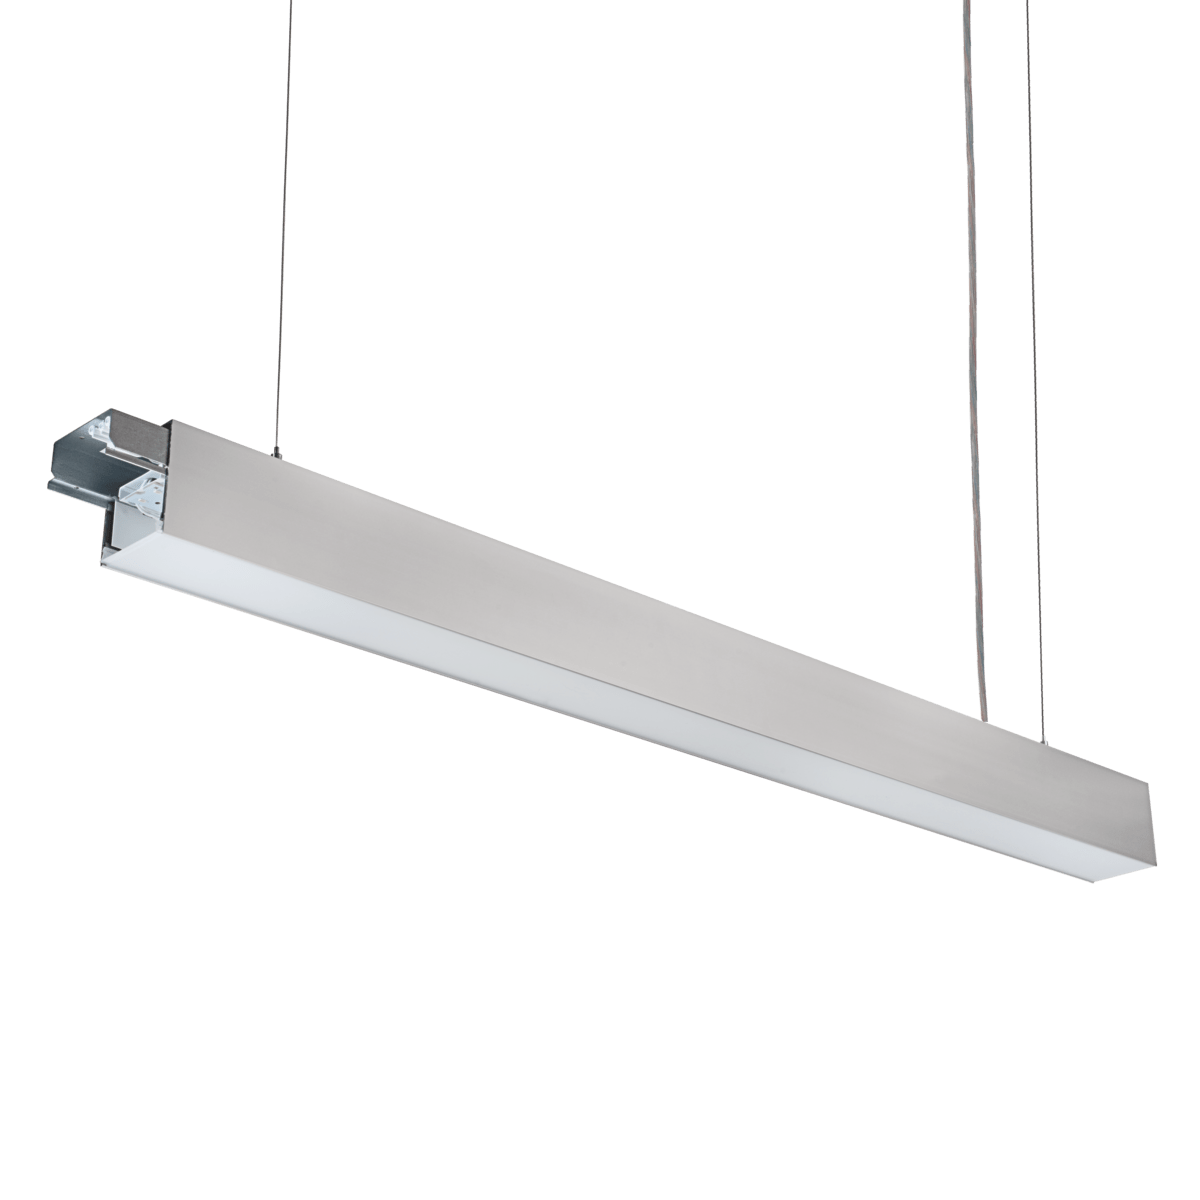 Luminaire Lighting Volica Led System Suspended Led Decorative Luminaire Lug